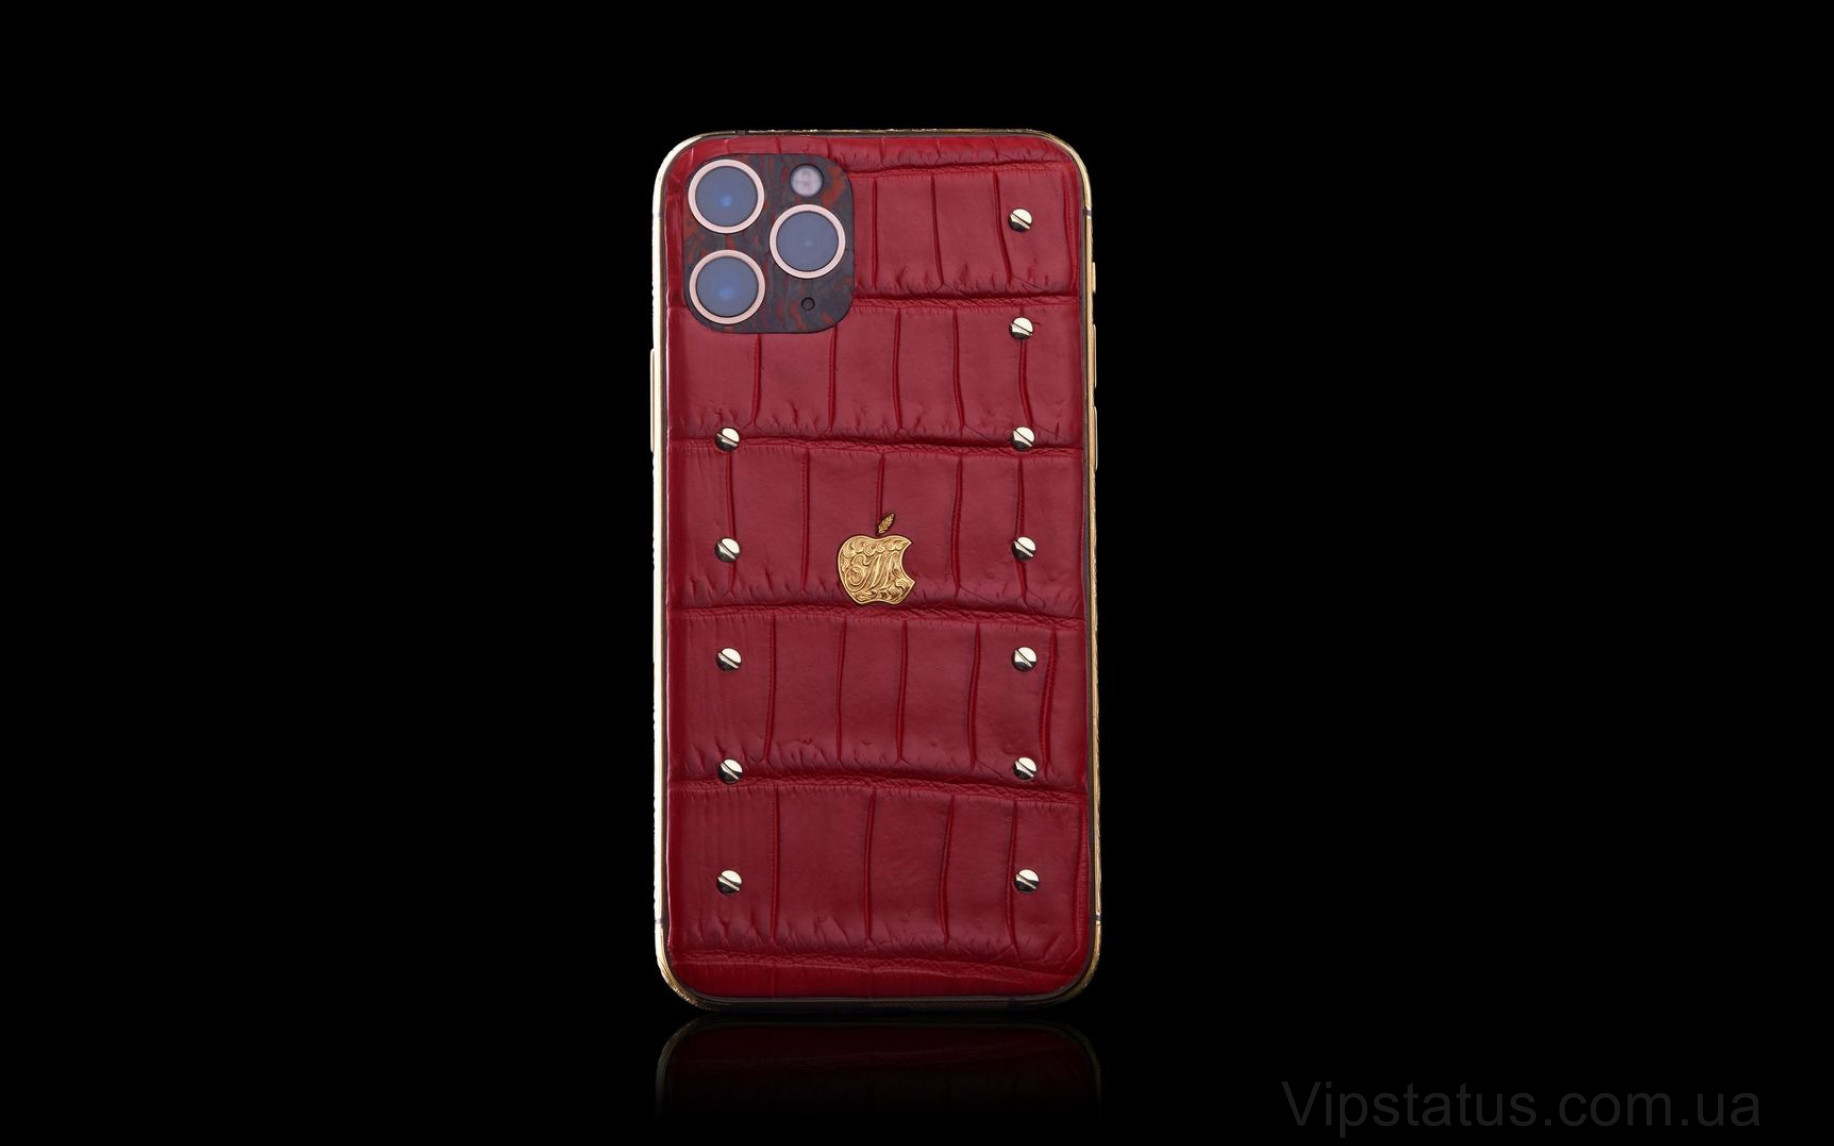 Elite Red Storm IPHONE 12 PRO MAX 512 GB Red Storm IPHONE 12 PRO MAX 512 GB image 3